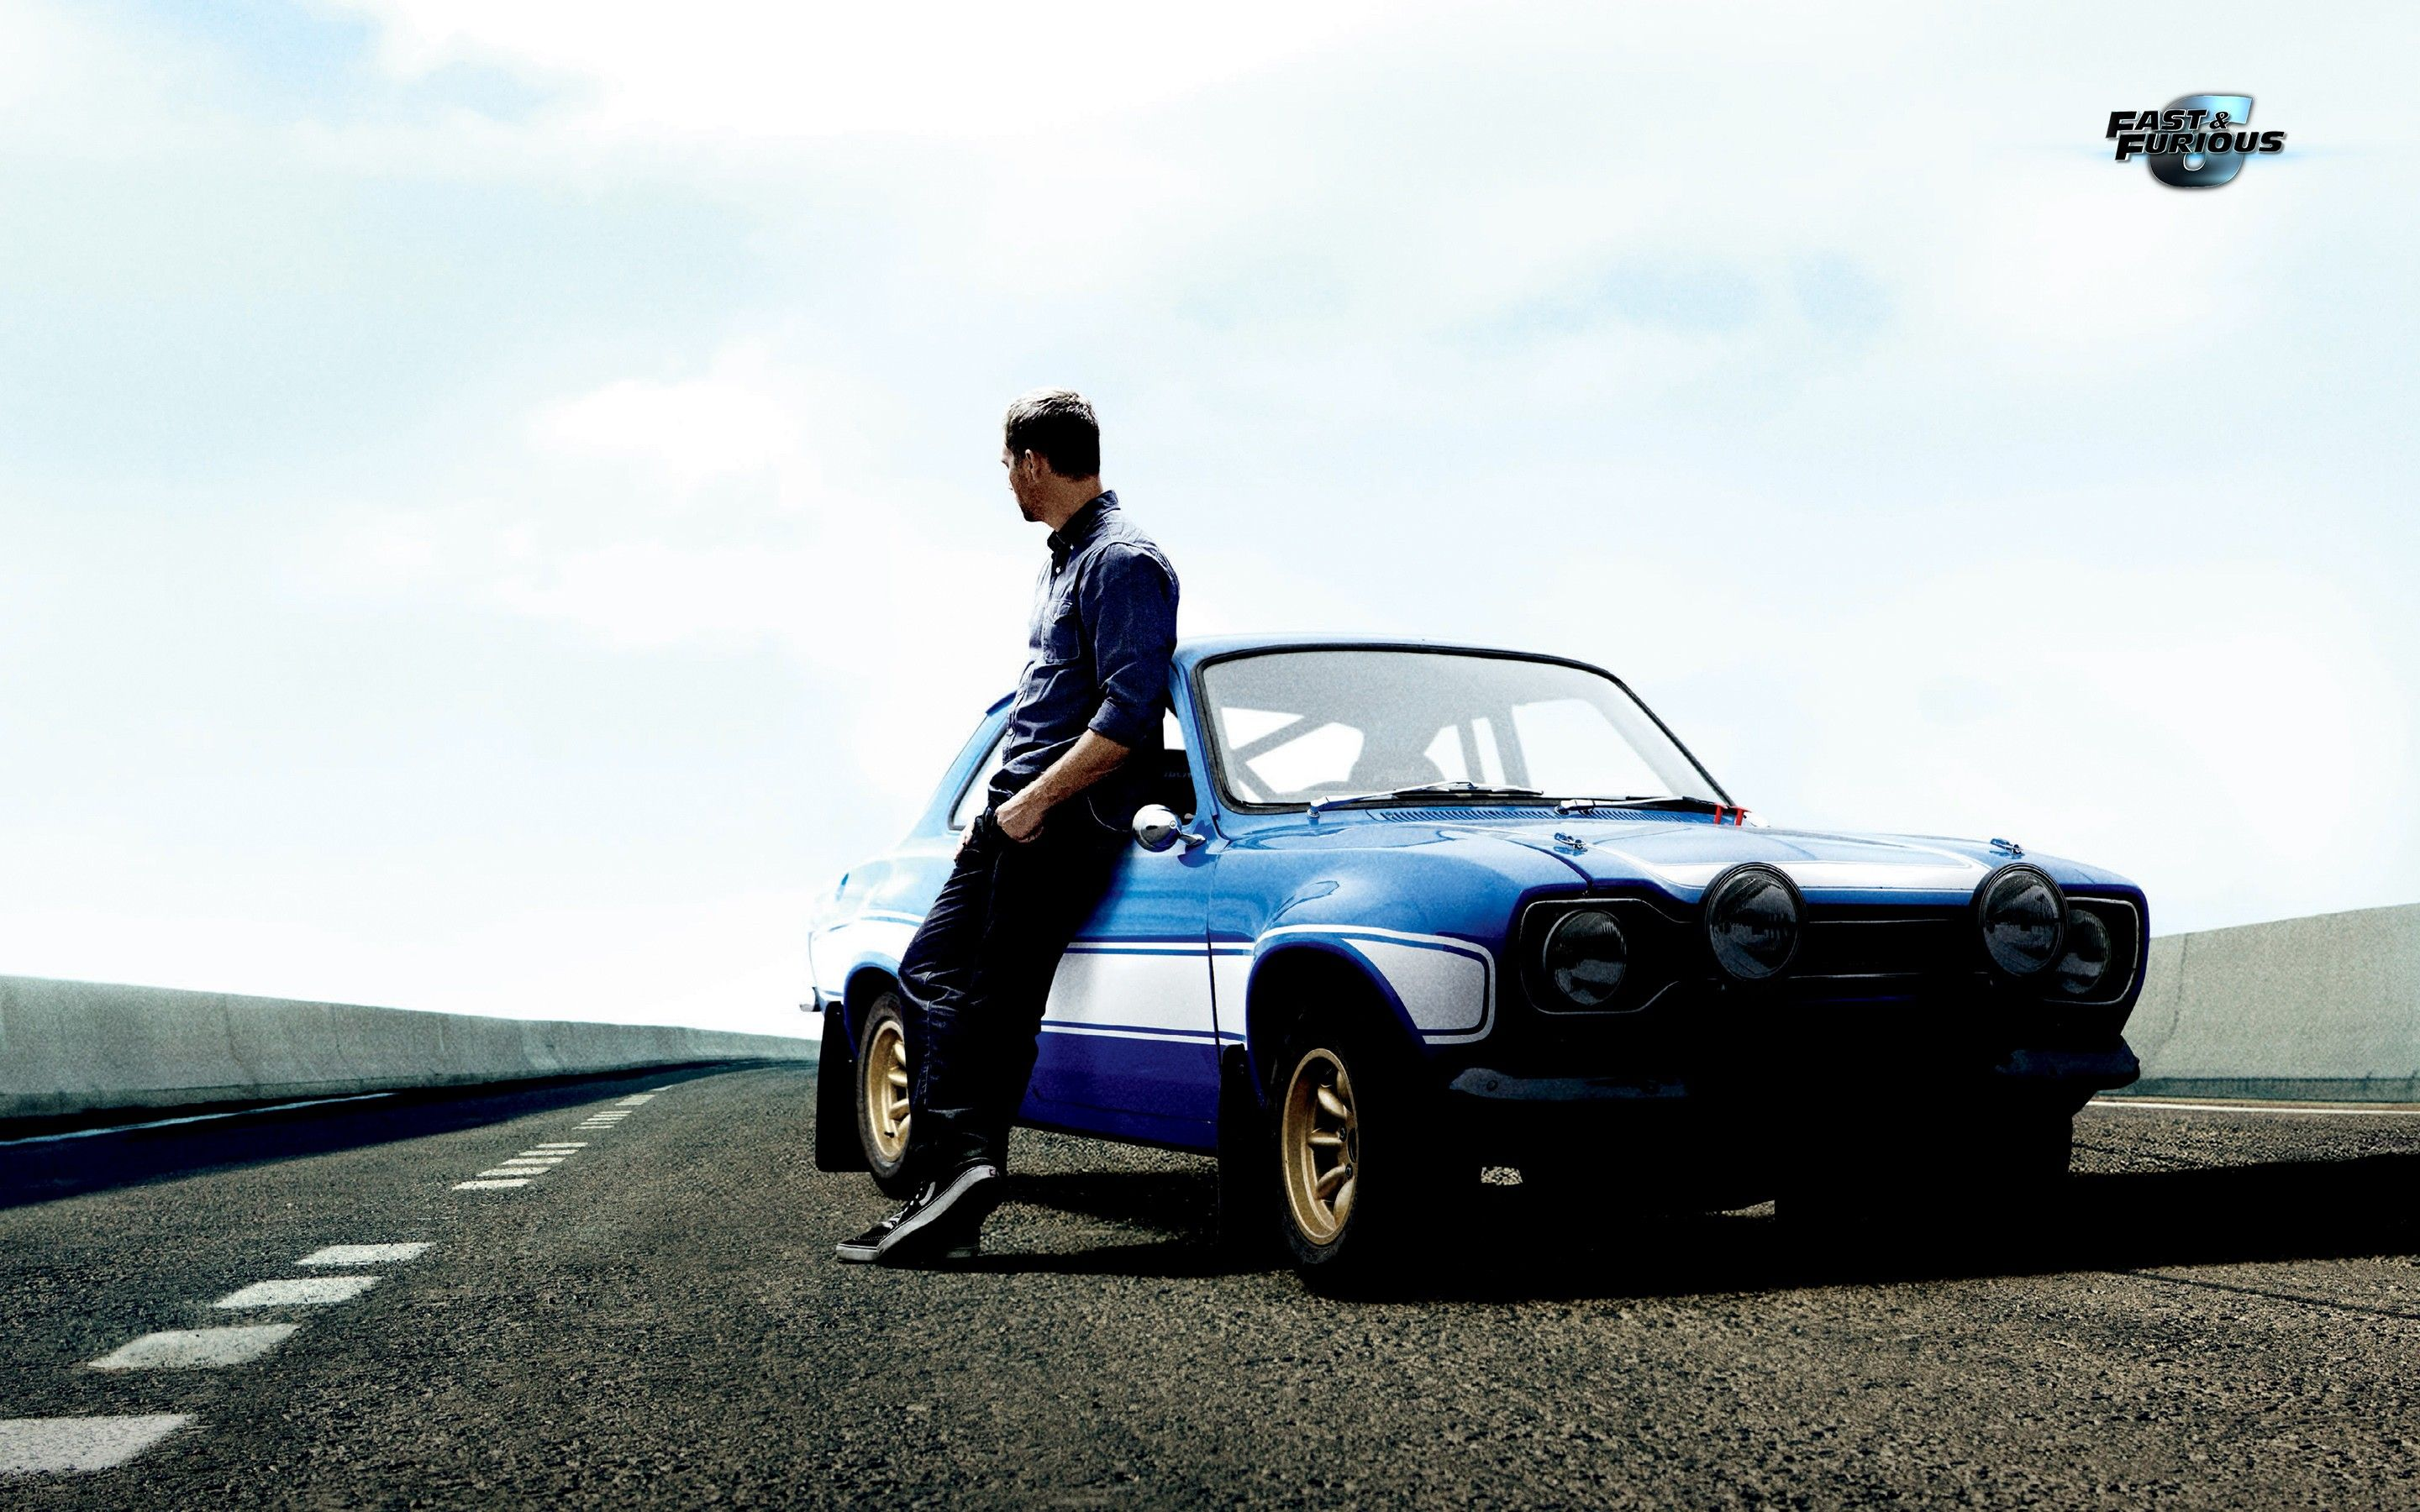 Paul Walker In Fast Furious 6 Wallpapers Hd Wallpapers Paul Walker Wallpaper Paul Walker Rip Paul Walker